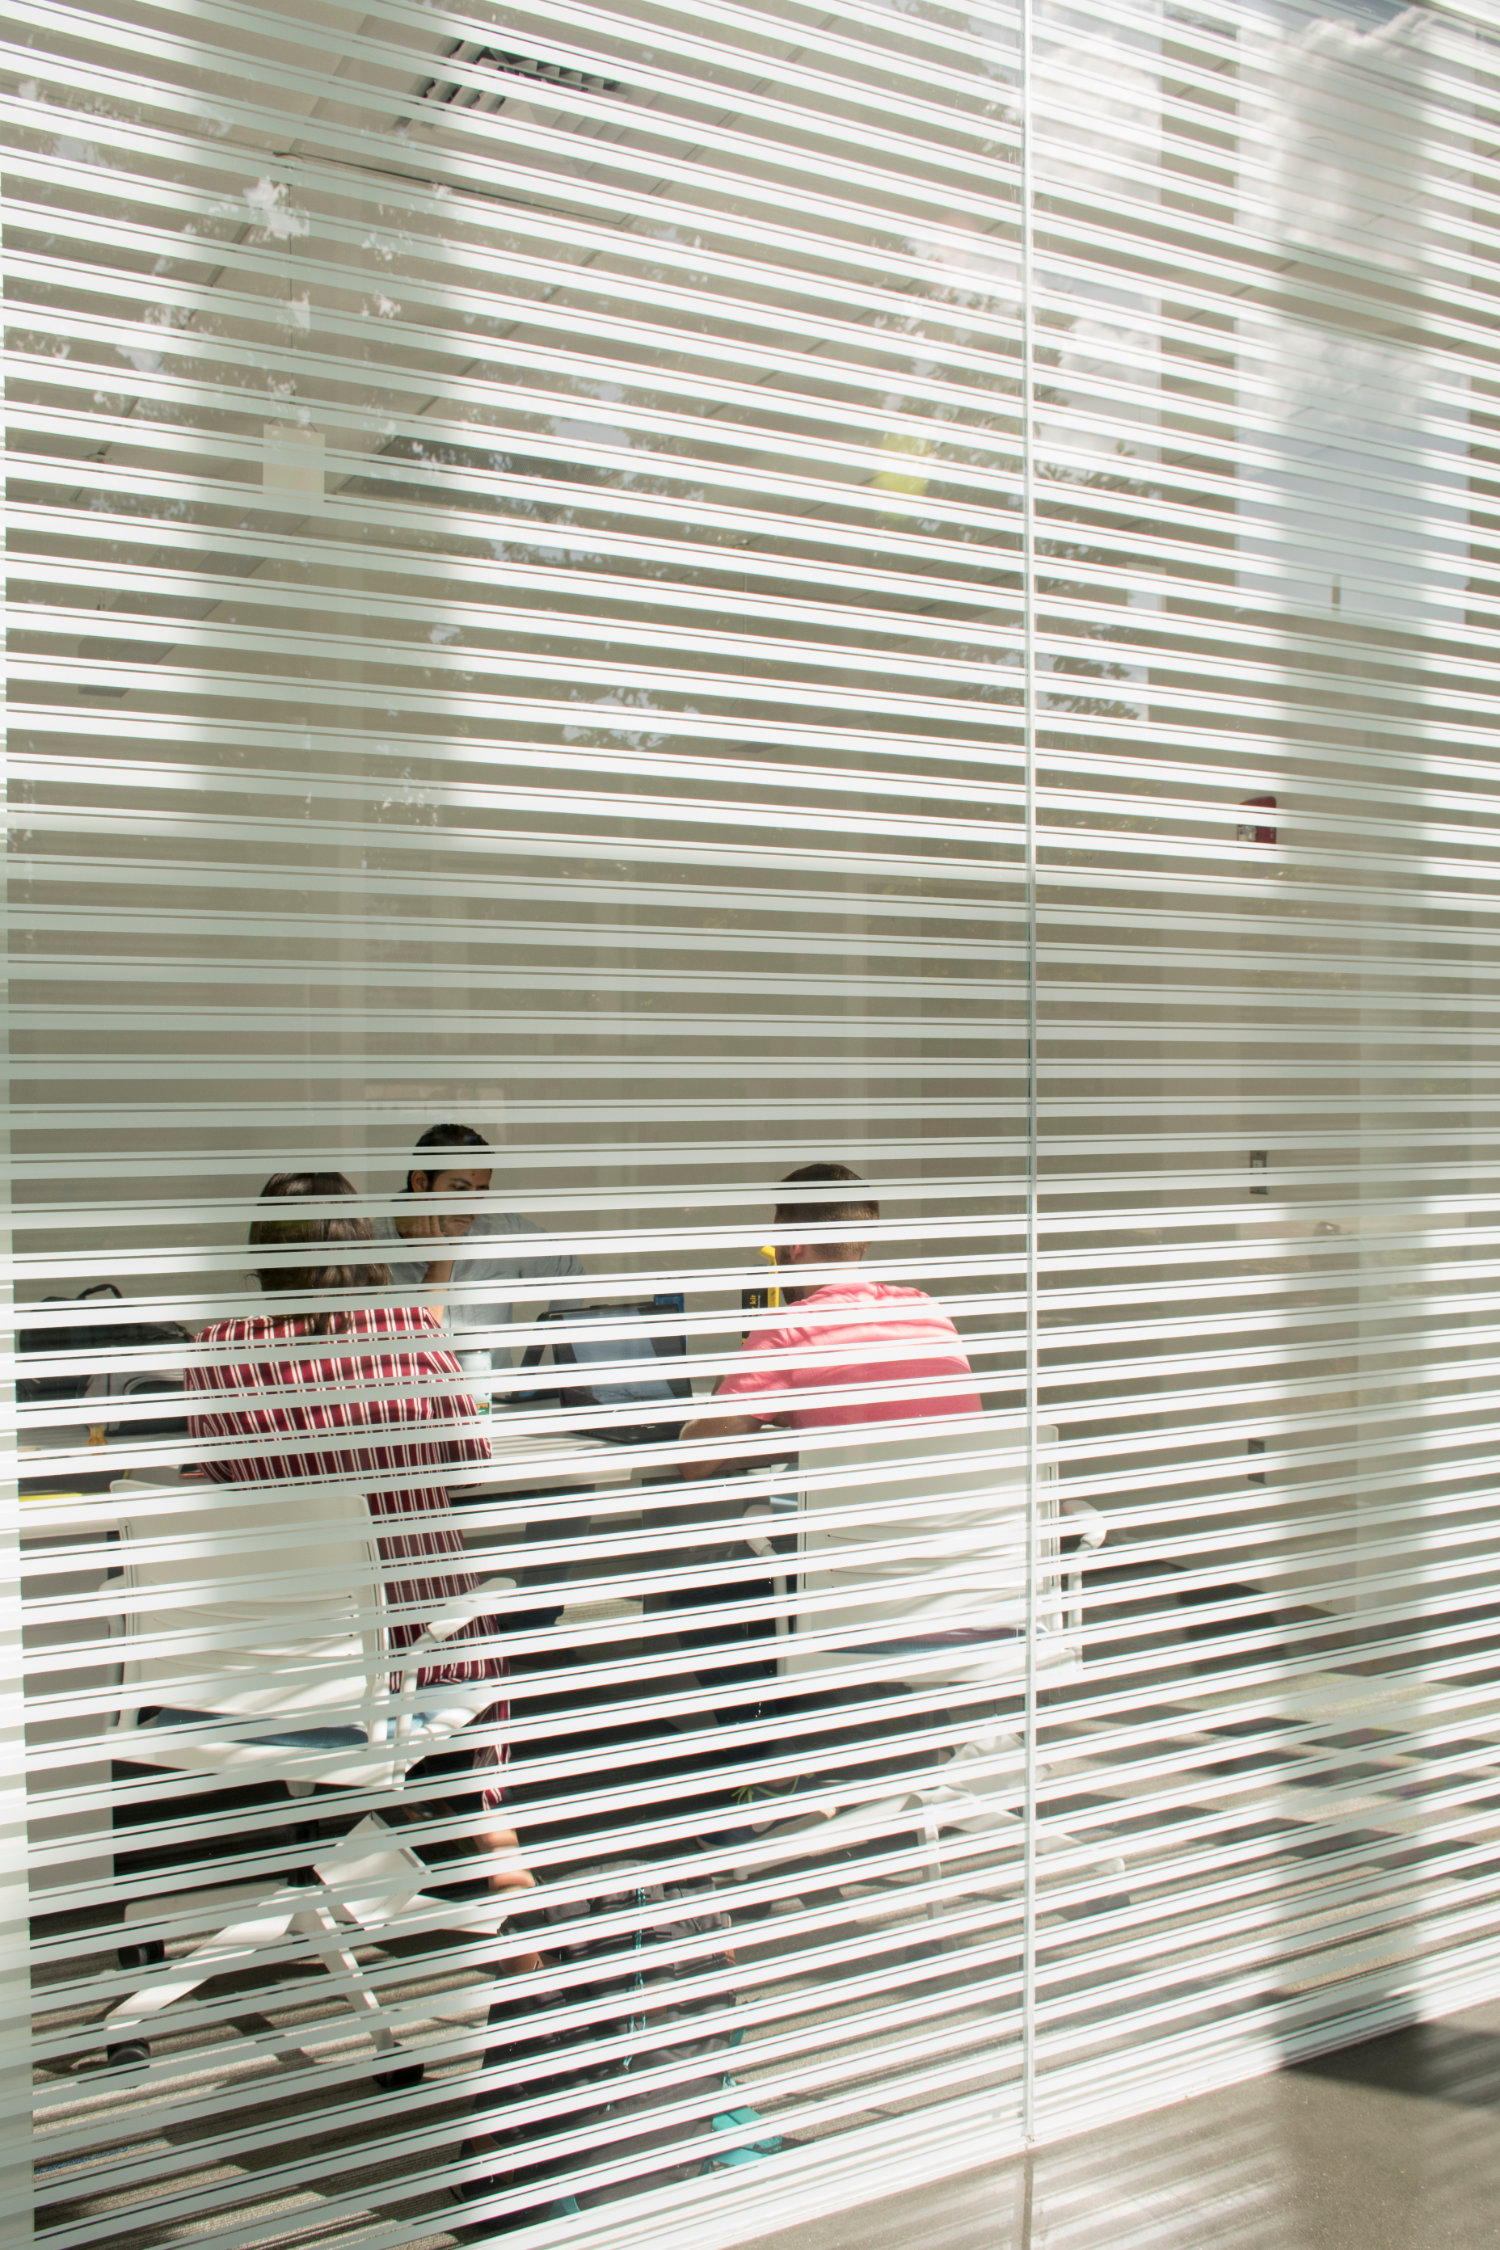 A view inside a classroom through closed blinds